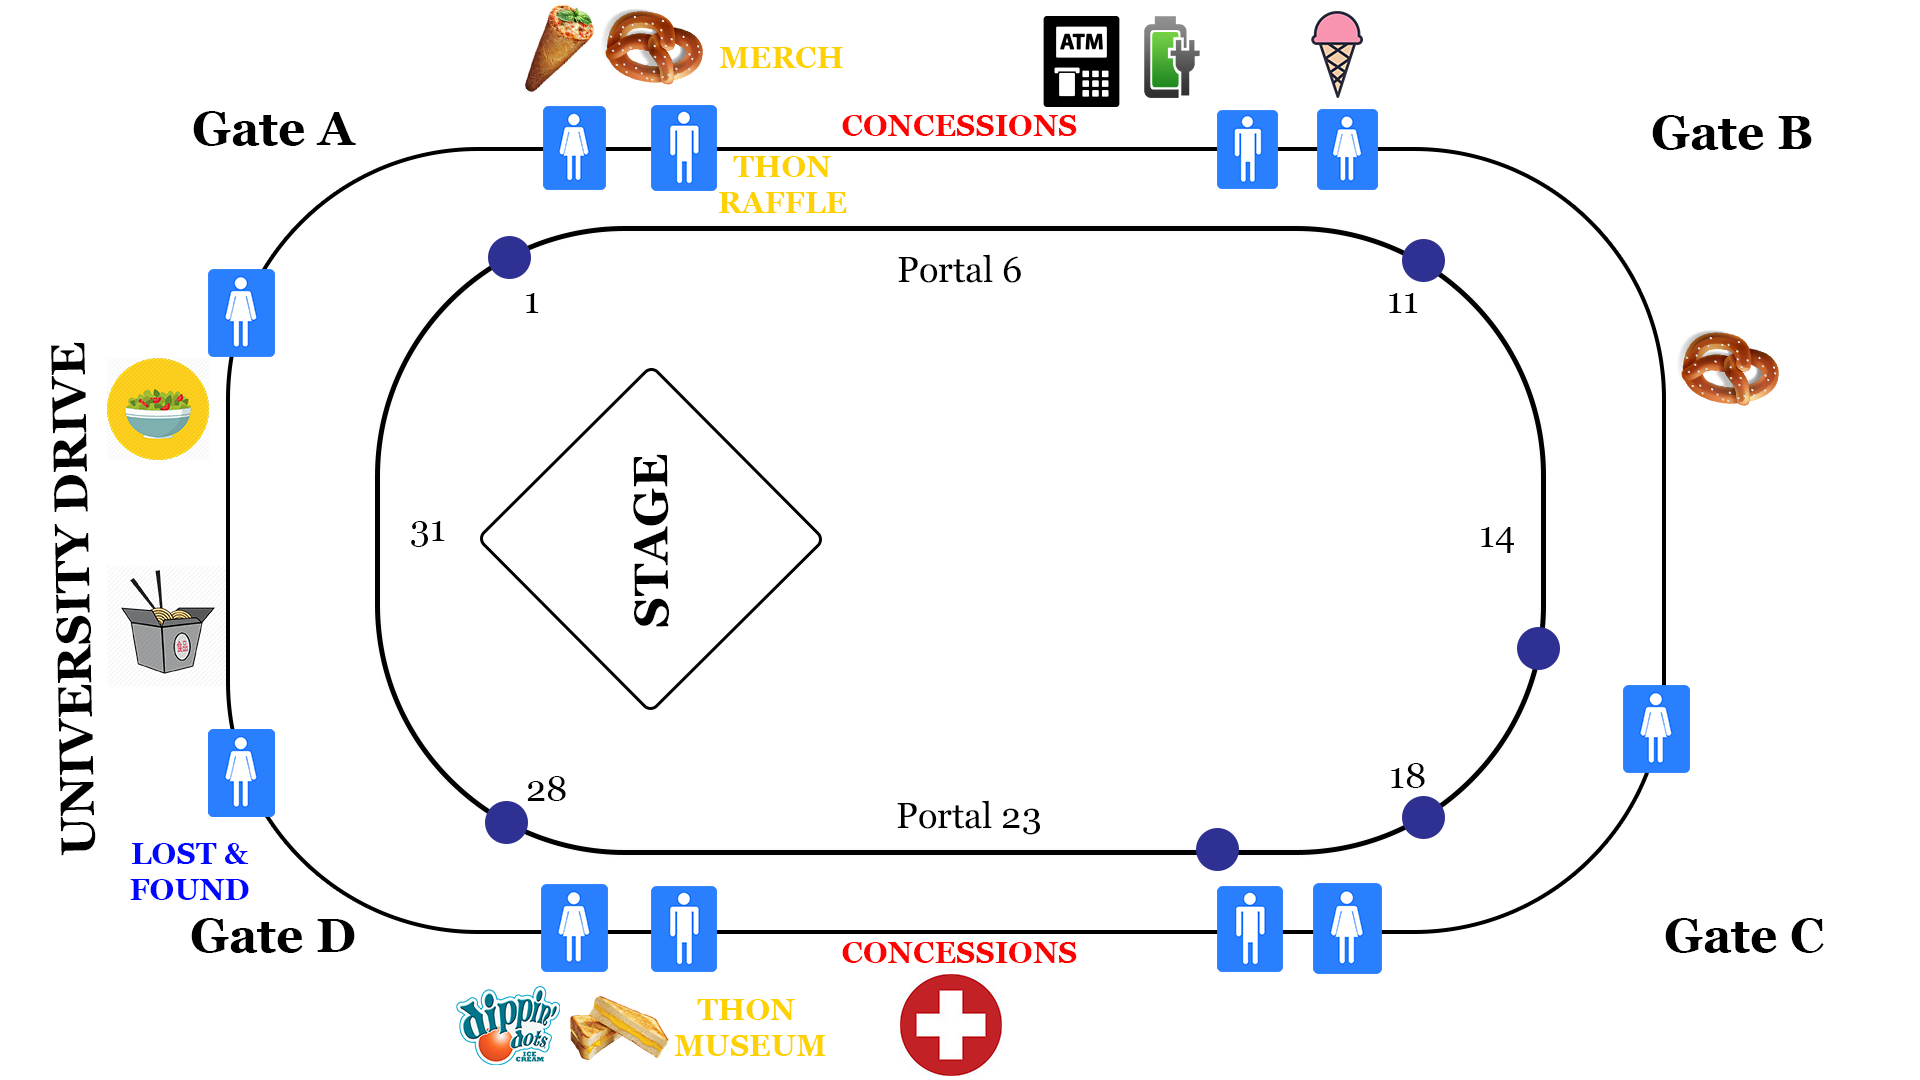 Your Portal By Portal Guide To THON 2018 | Onward State on map of arco arena, map of van andel arena, map of seven springs mountain resort, map of fitzgerald theater, map of verizon wireless arena, map of la sports arena, map of mgm grand garden arena, map of york fair, map of burton coliseum, map of germain arena, map of ppl park, map of john paul jones arena, map of bramlage coliseum, map of pinnacle bank arena, map of time warner cable arena, map of value city arena, map of blue cross arena, map of delaware state fair, map of matthew knight arena, map of first niagara pavilion,